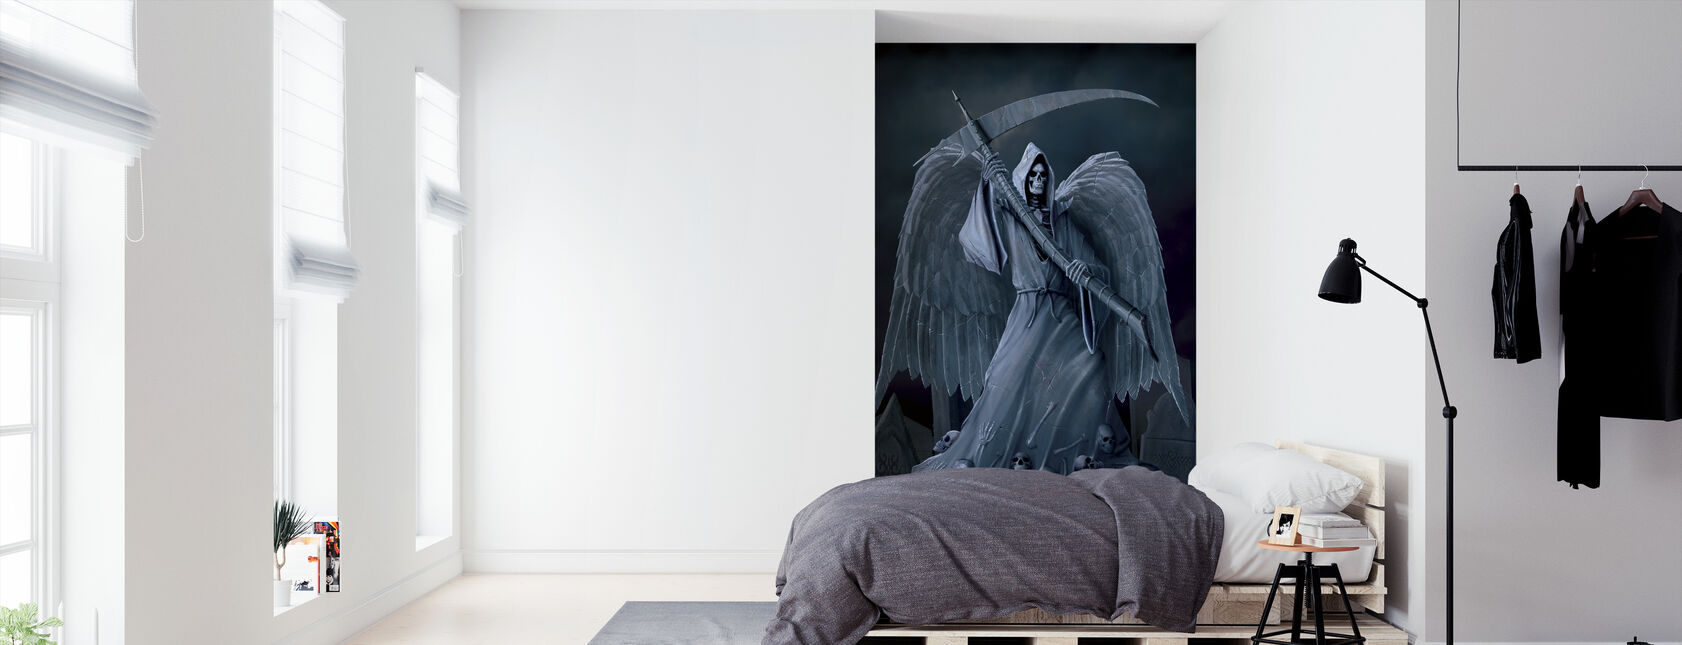 Death on a Hold - Wallpaper - Bedroom